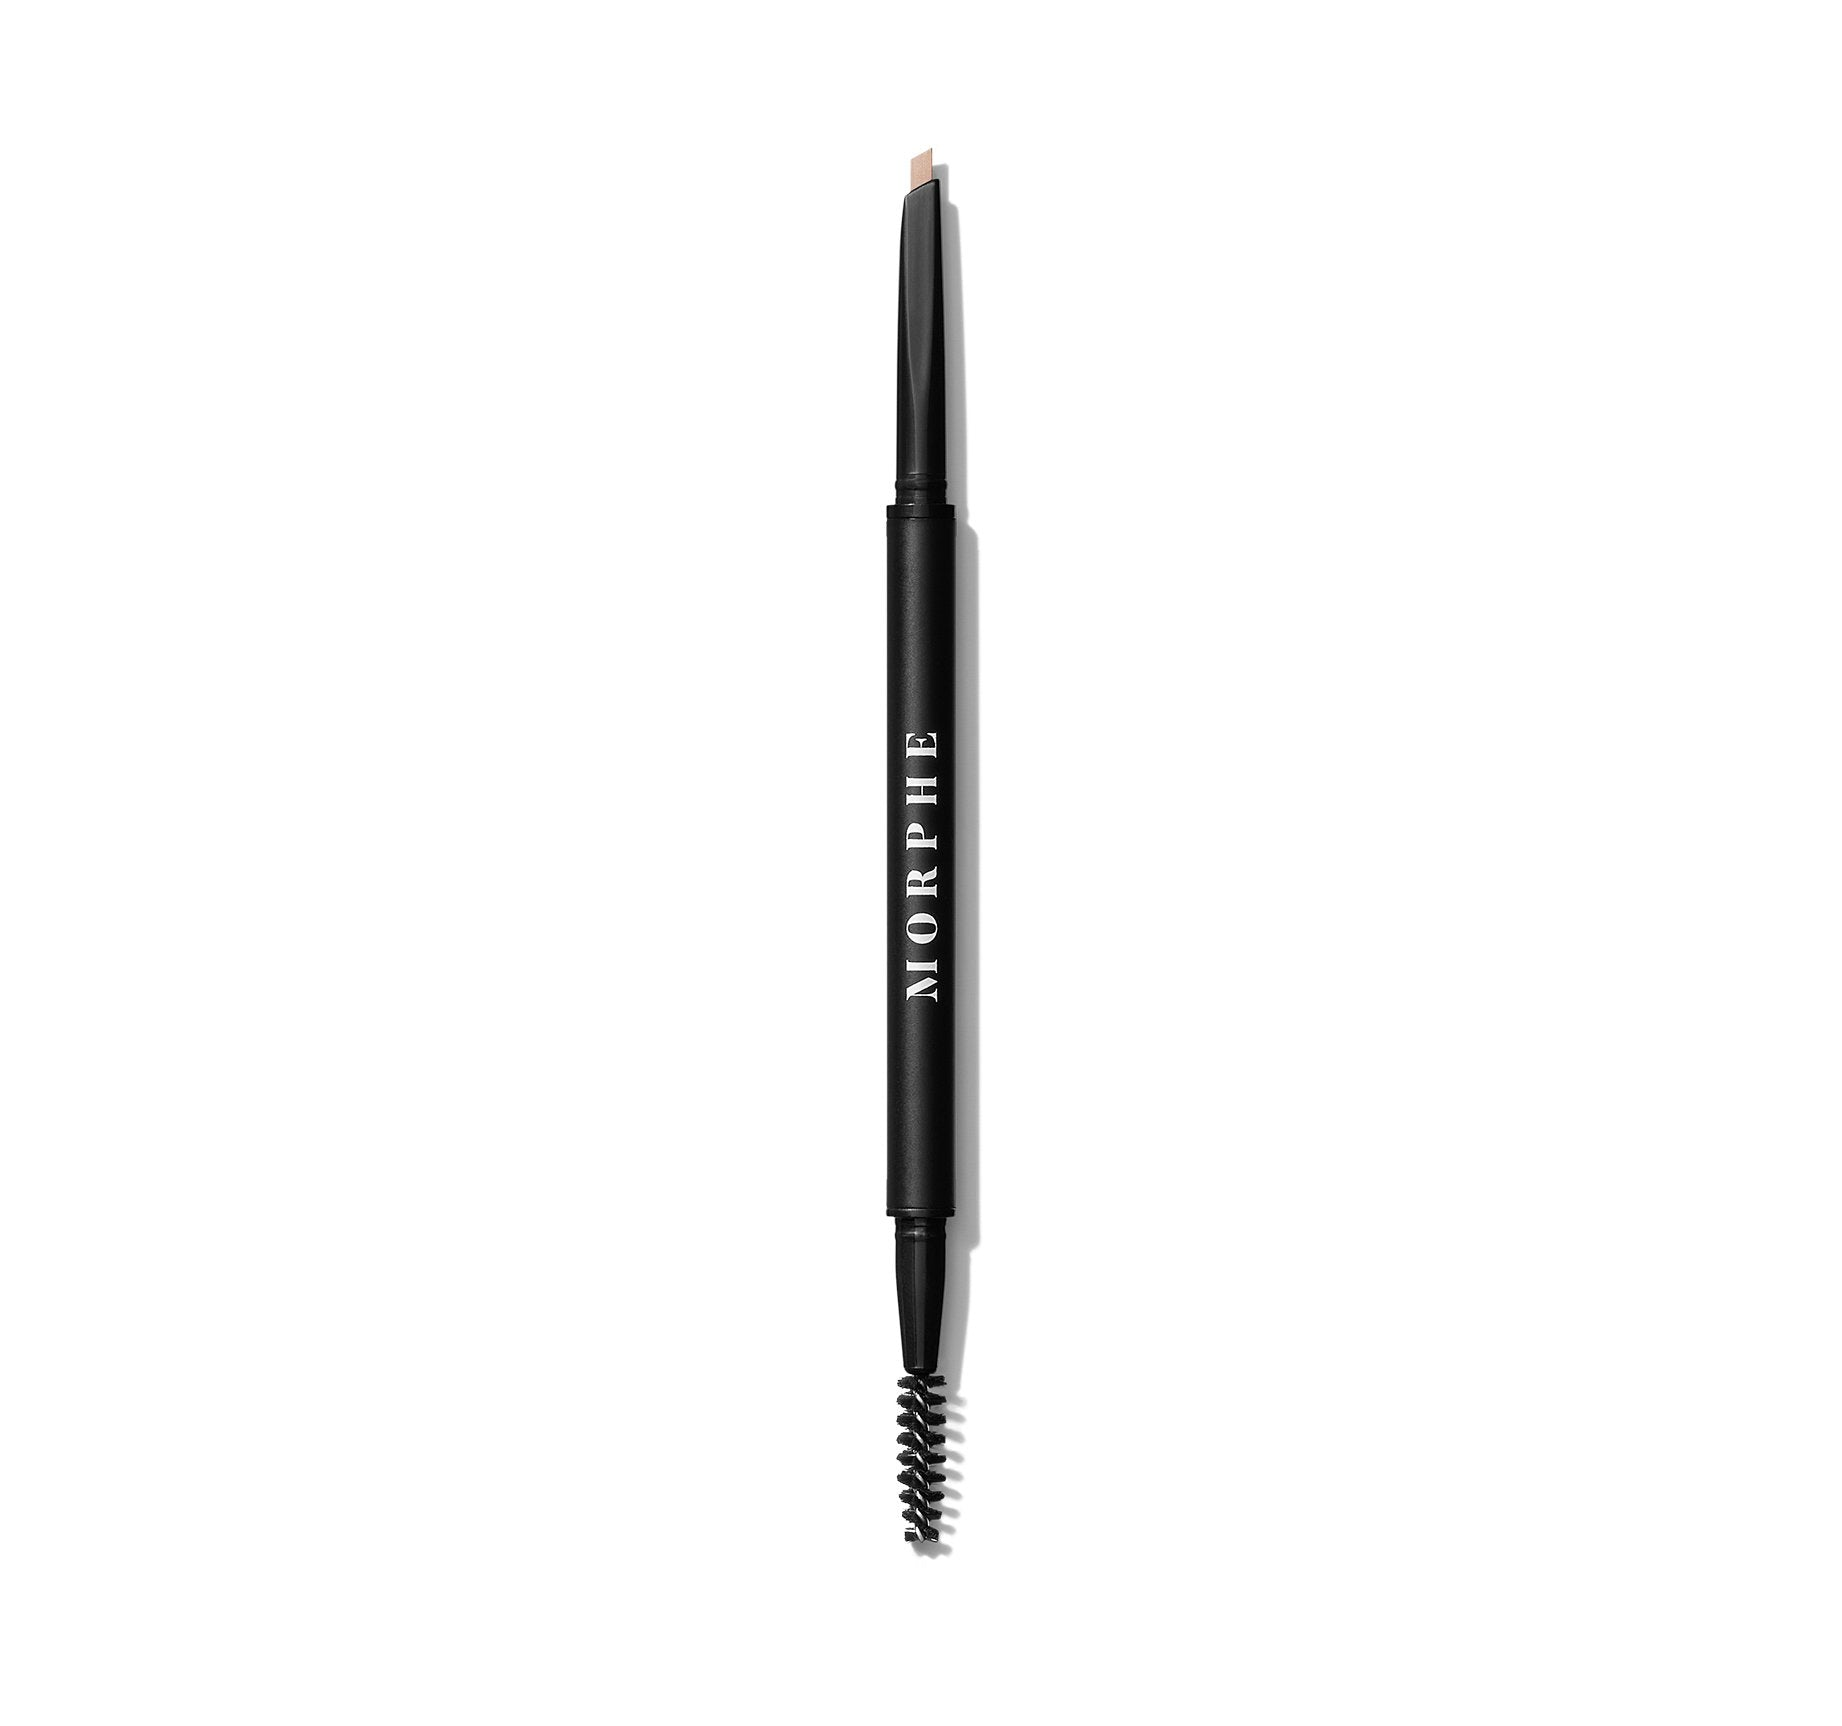 DEFINER BROW PENCIL - MACADAMIA, view larger image